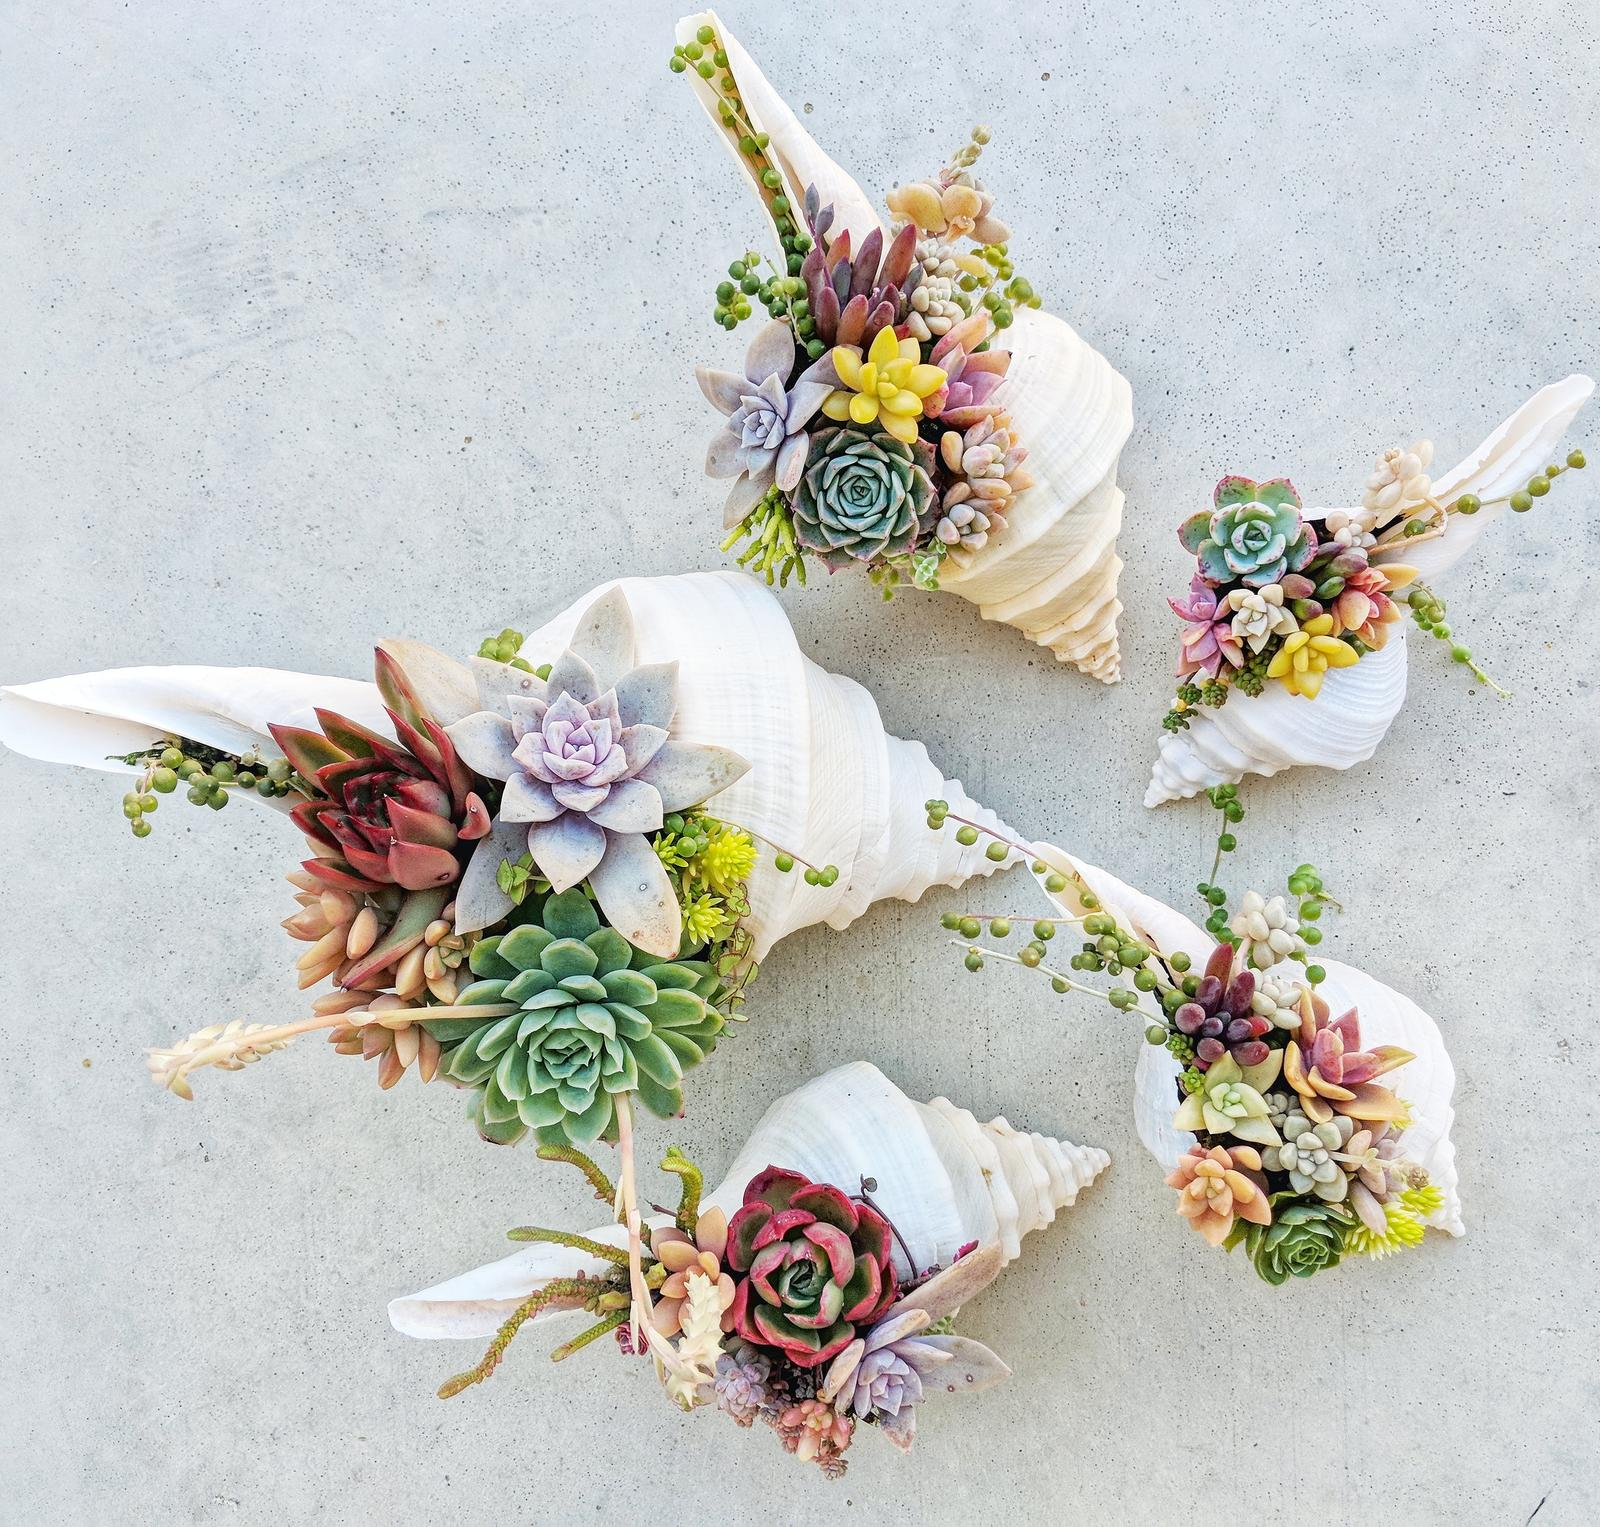 Succulents in seashells